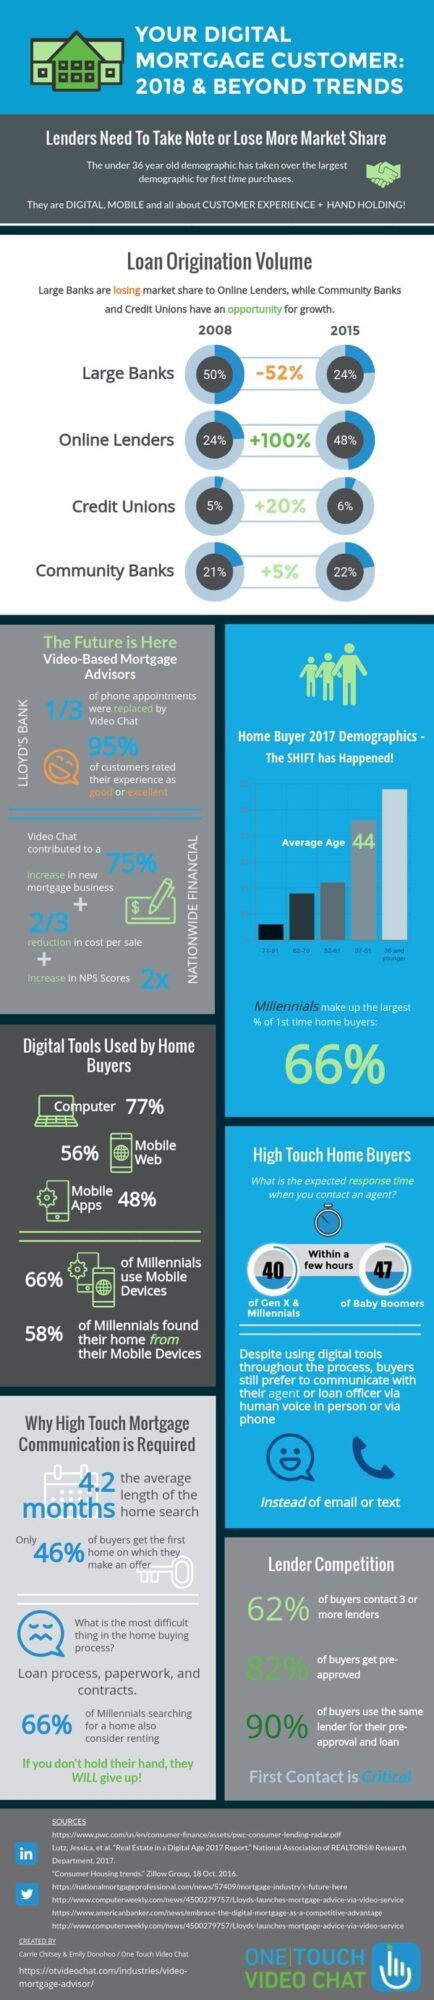 Digital Mortgage 2018 Infographic